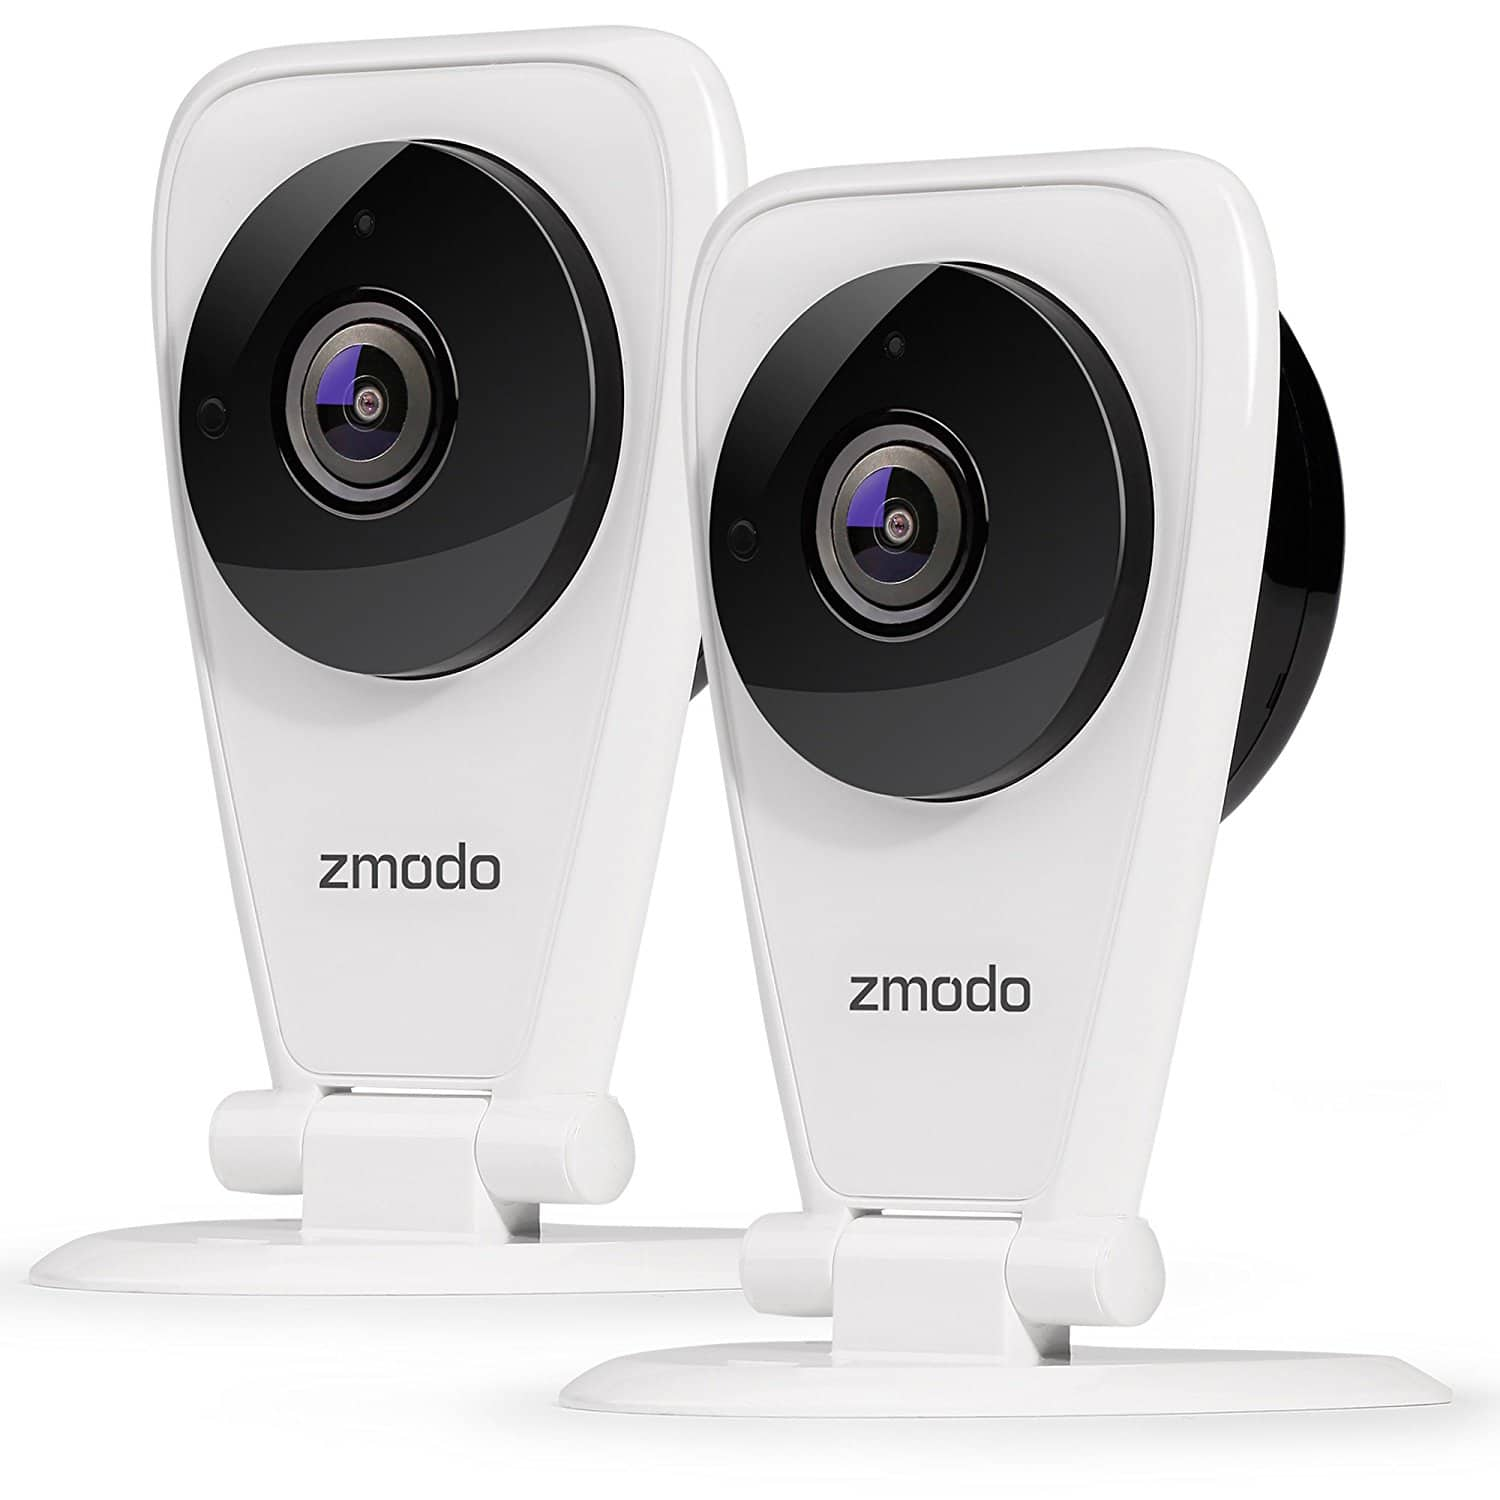 Cyber Monday - 57% Off 2Pcs HD Wi-Fi Wireless Security Surveillance IP Camera System w/ Night Vision + Cloud Service $49.99